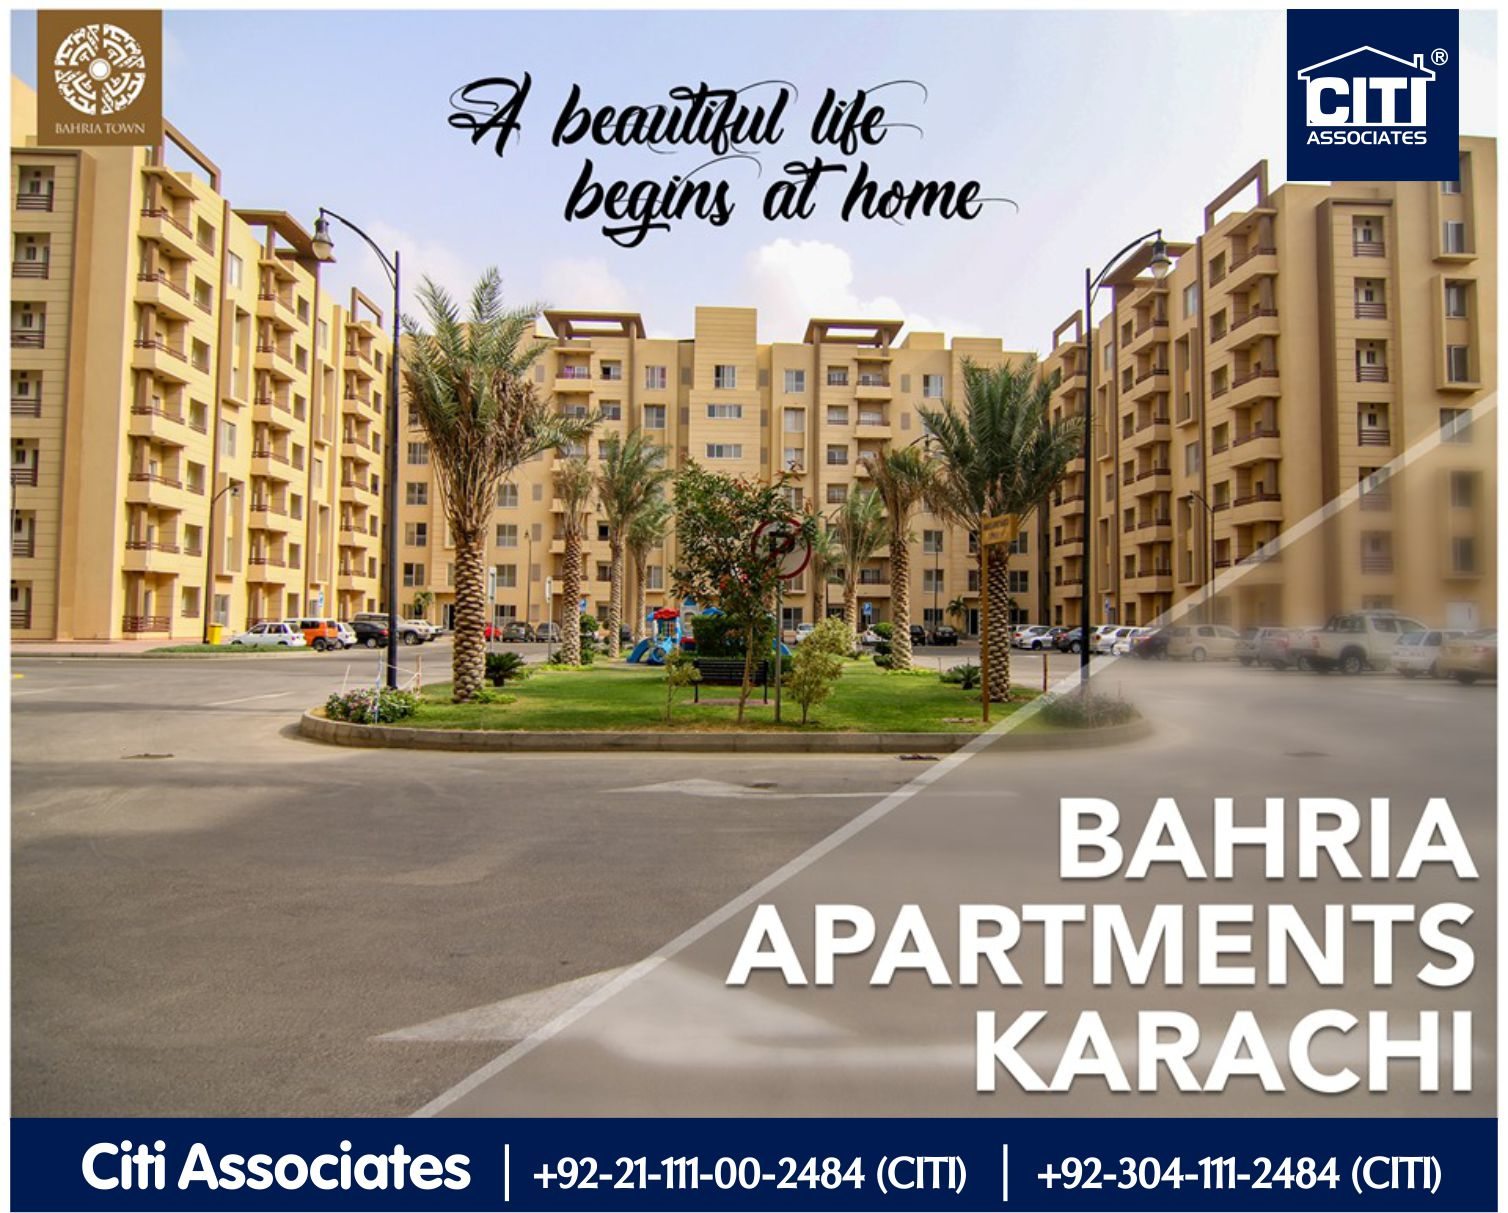 A Beautiful Life begins at Home | Bahria Apartments Karachi